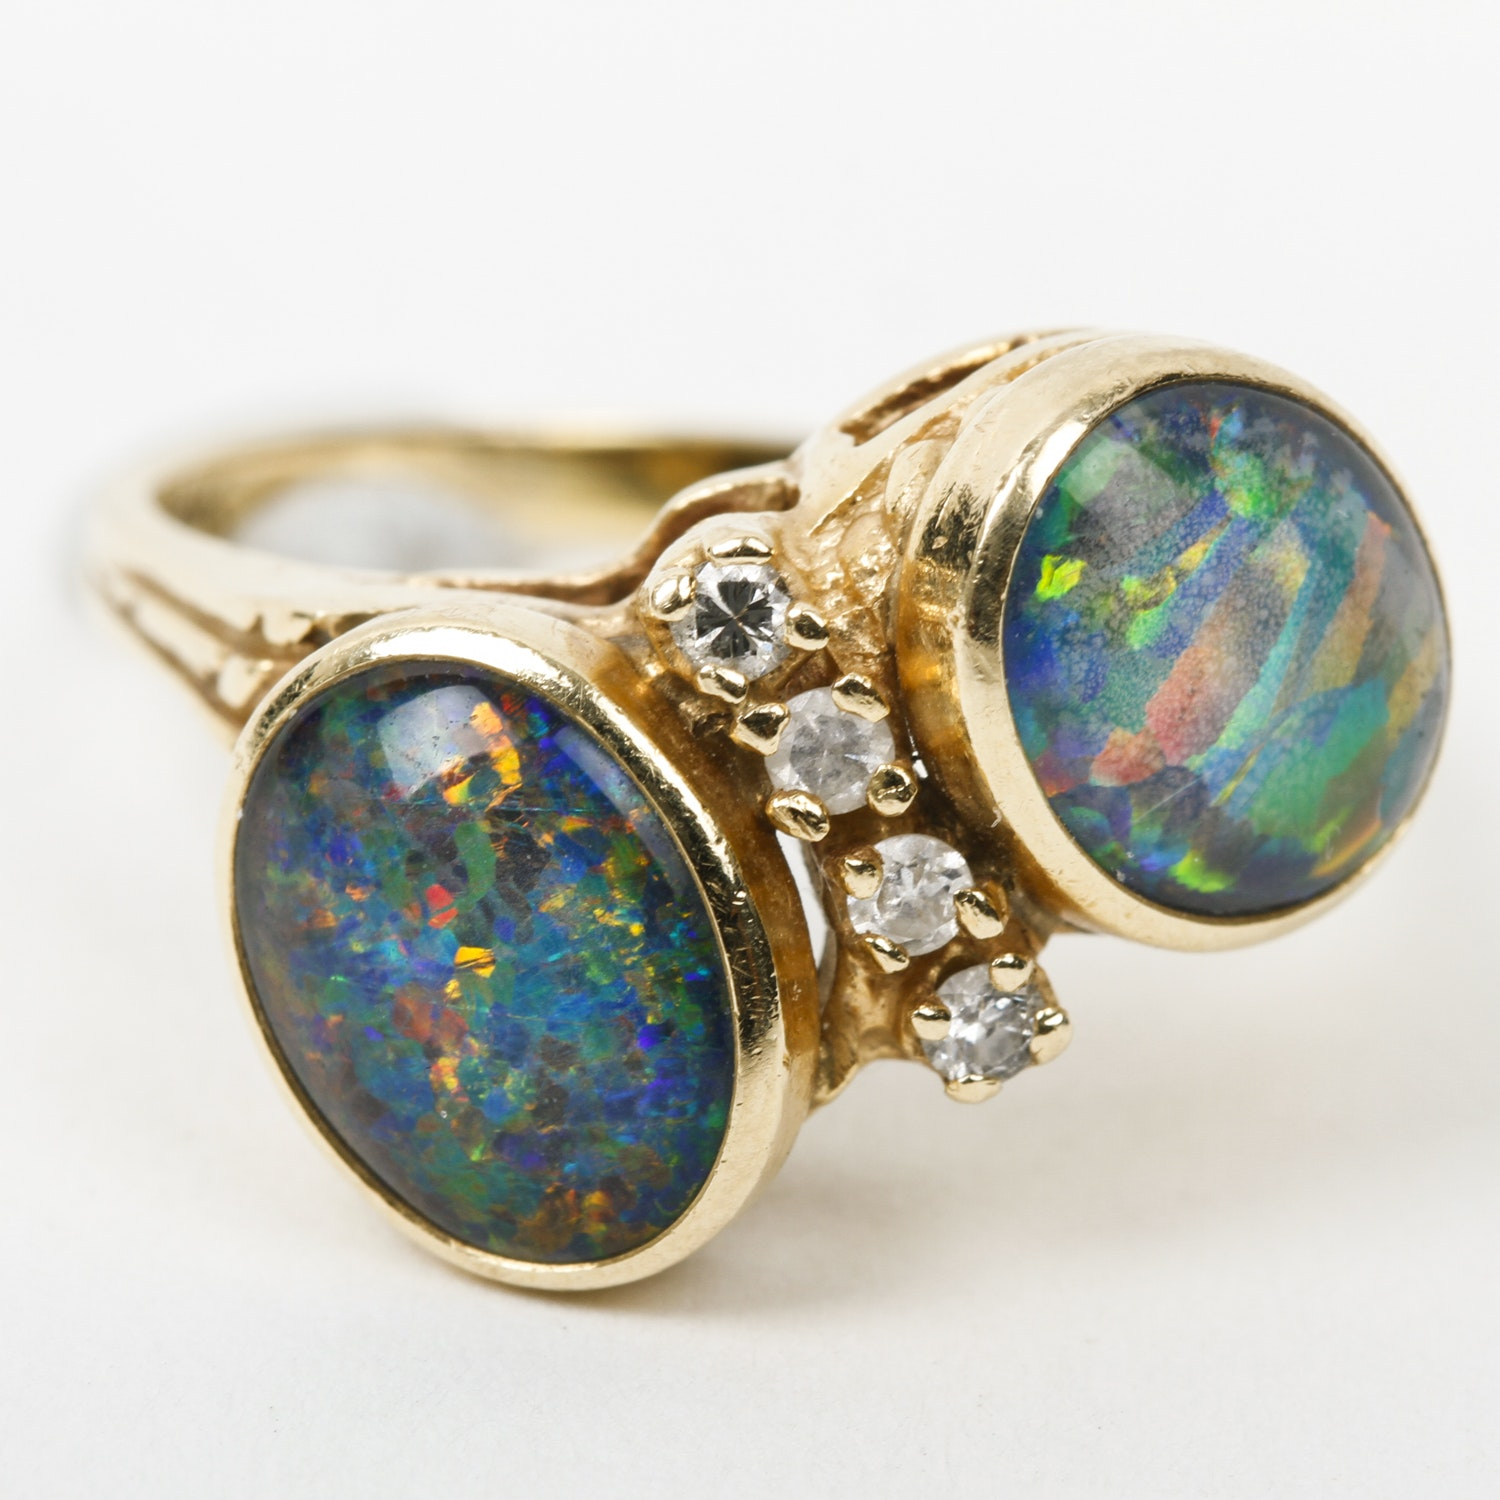 14K Yellow Gold, Opal Triplet, and Diamond Ring